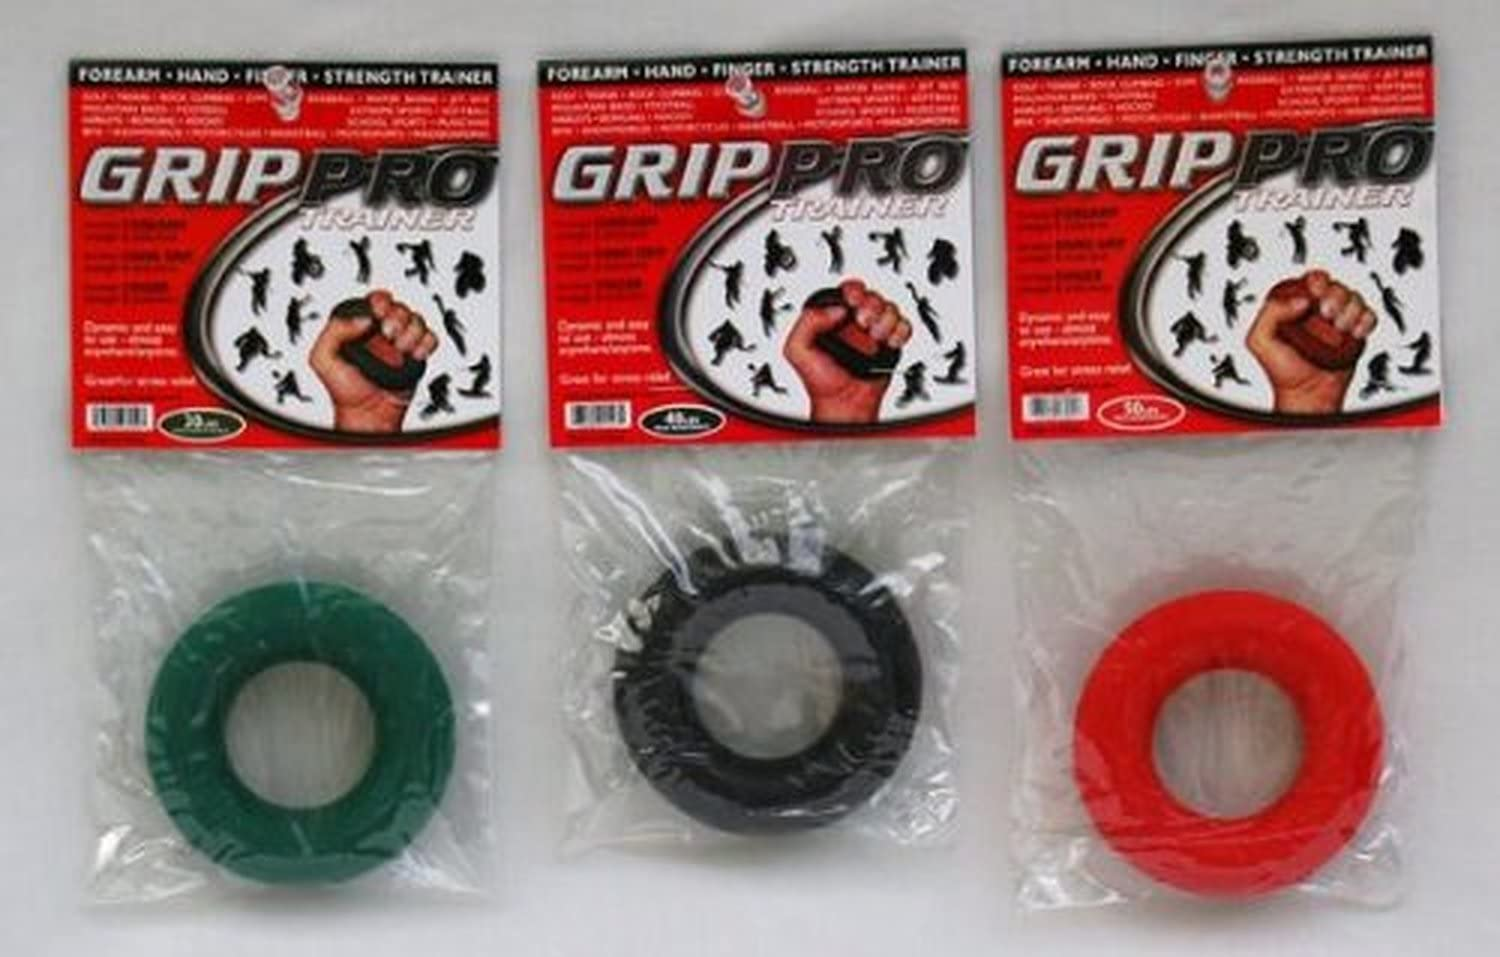 Grip Pro Trainer Hand Grip Forearm Strength Gripper